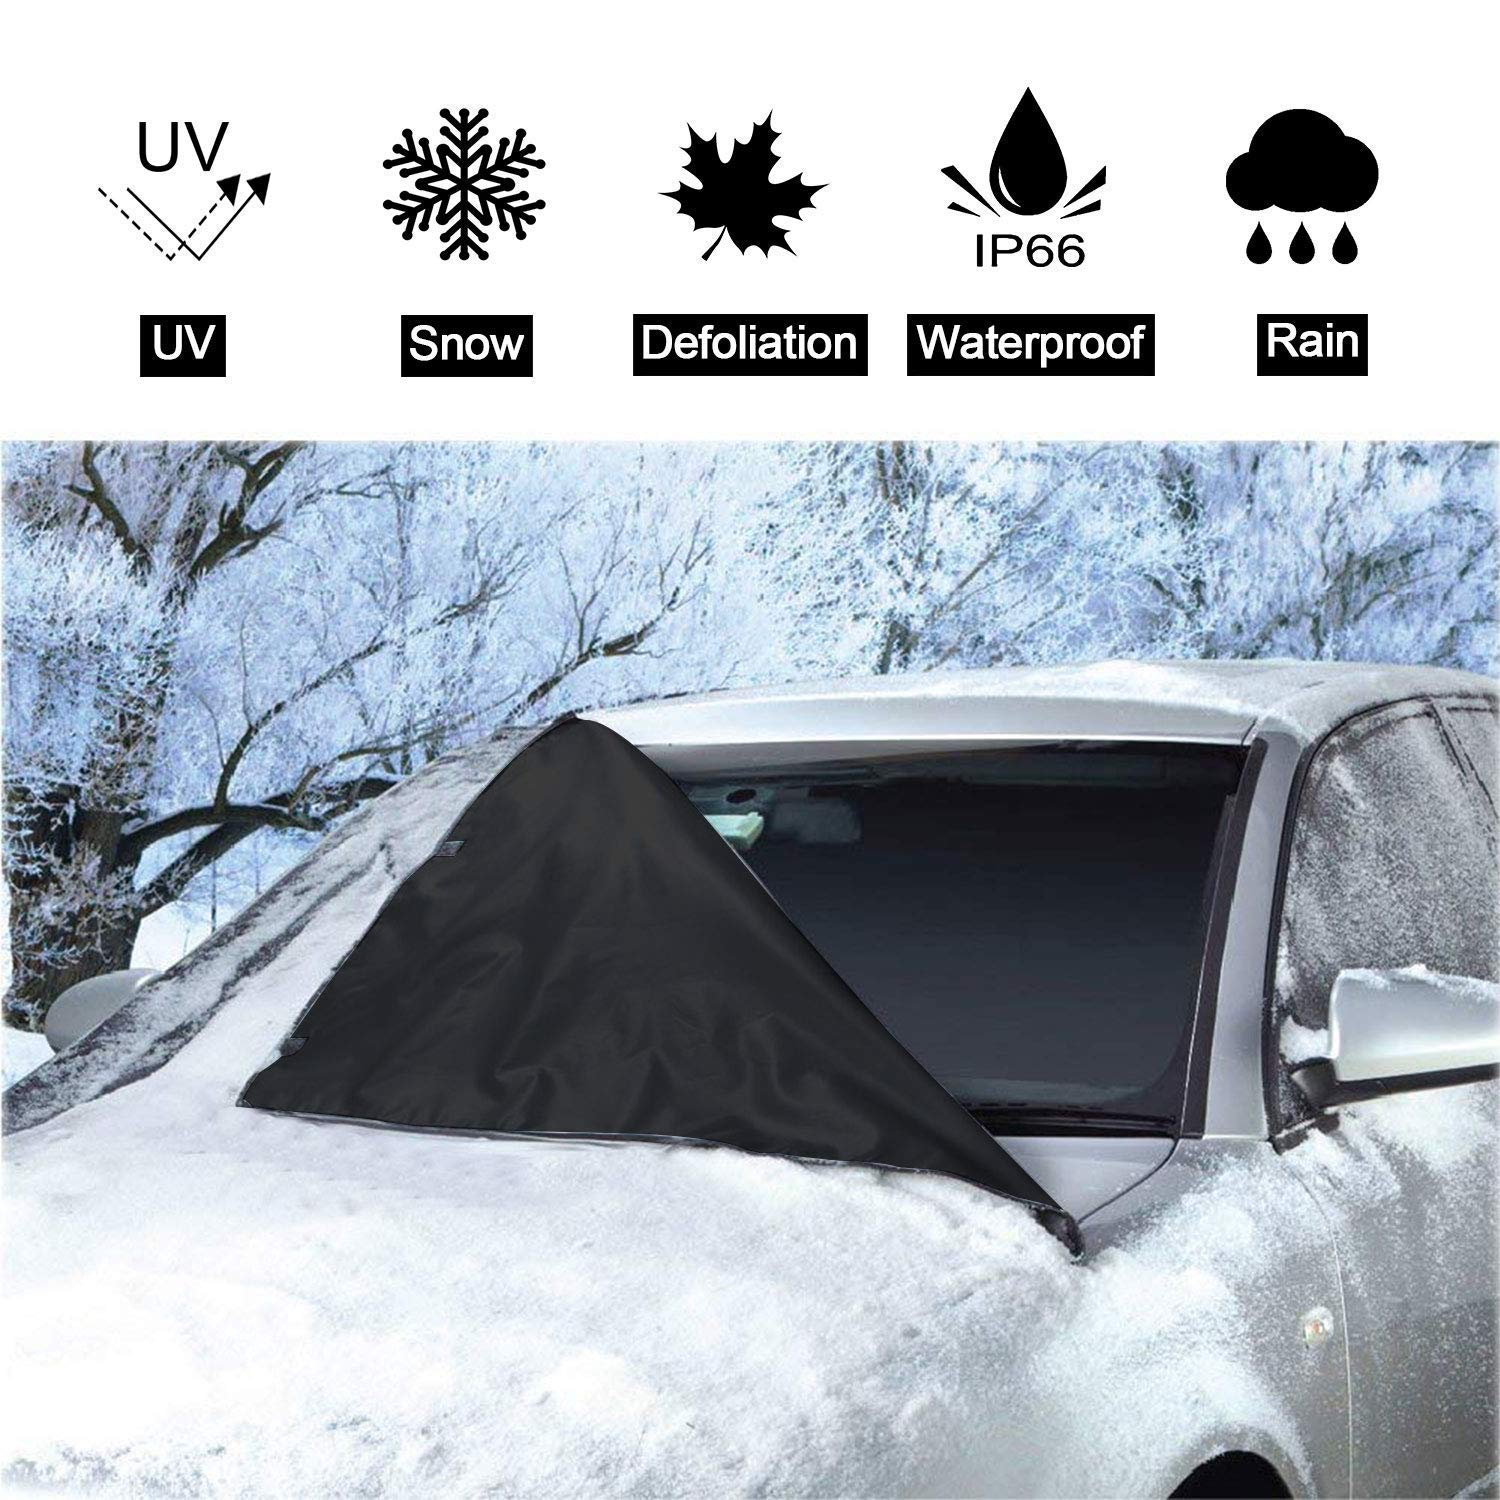 Windscreen Snow & Sun Shade Cover - Universal Wind Screen Frost and Auto Ice Protector Wiper Protector For All Weather- Light weighted Material - 150 x 70 cm, Easy to Accommodate East Eagle Technology